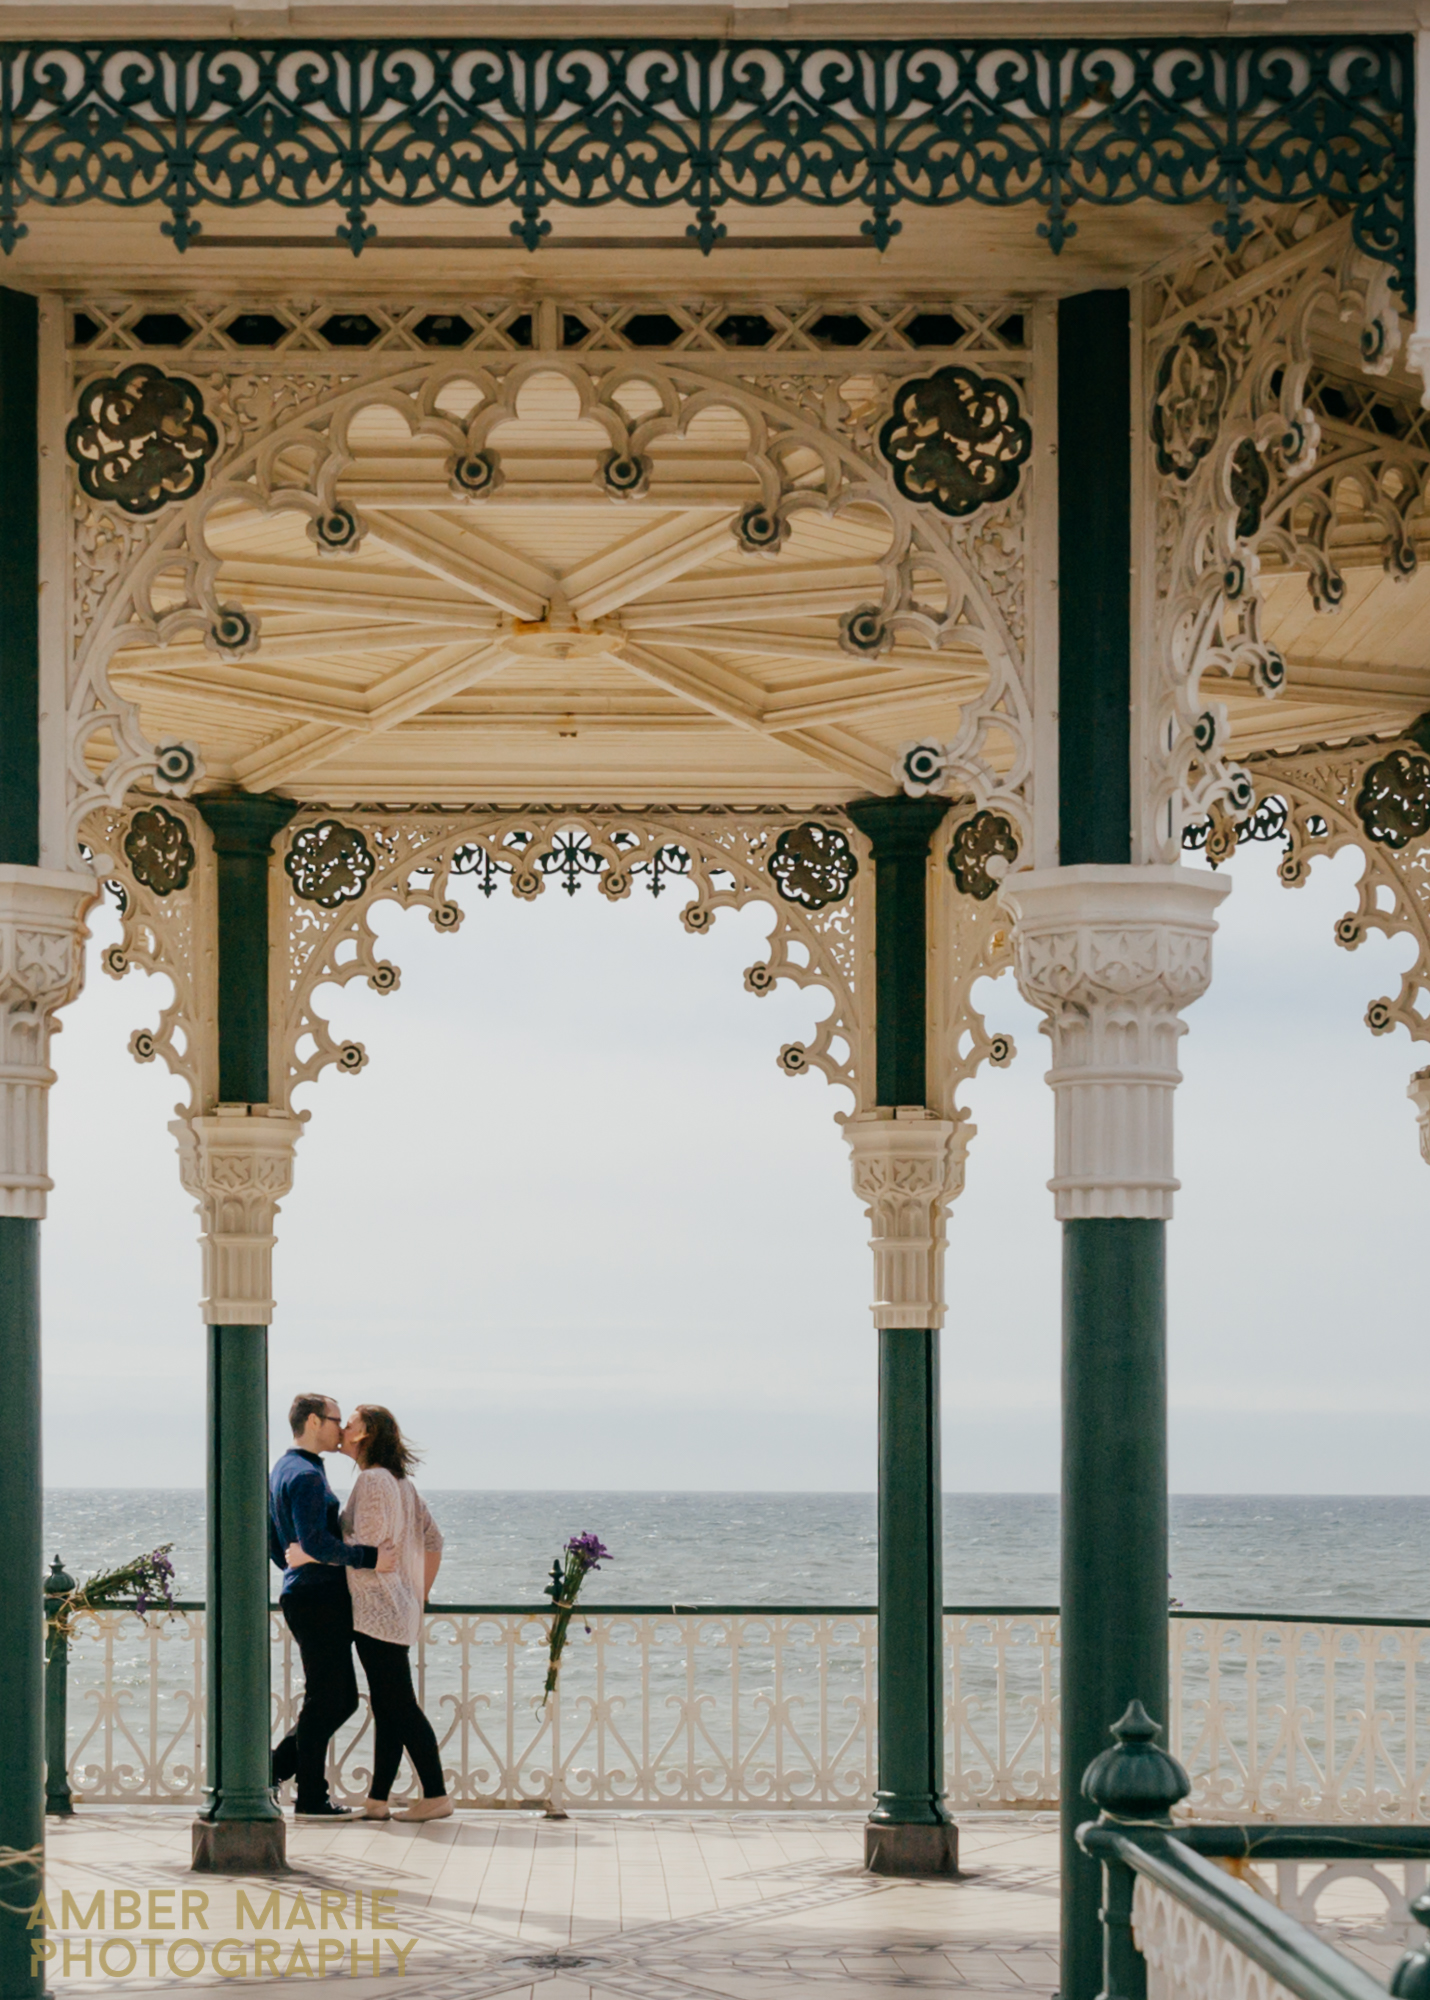 Creative and relaxed wedding photography brighton